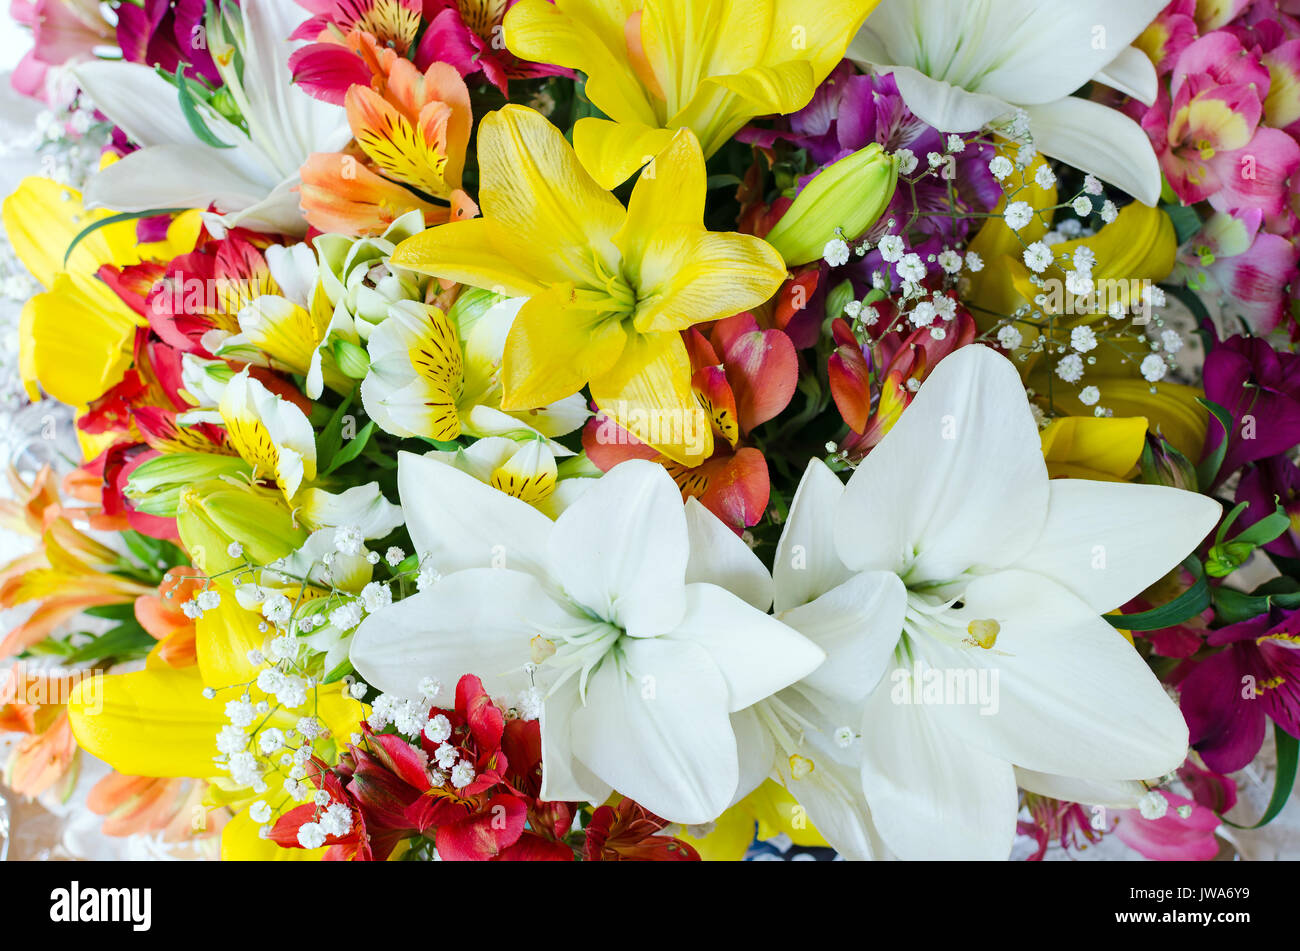 Large bouquet of different flowers floral background pattern of large bouquet of different flowers floral background pattern of flowers lot of natural flowers in colorful composition izmirmasajfo Gallery